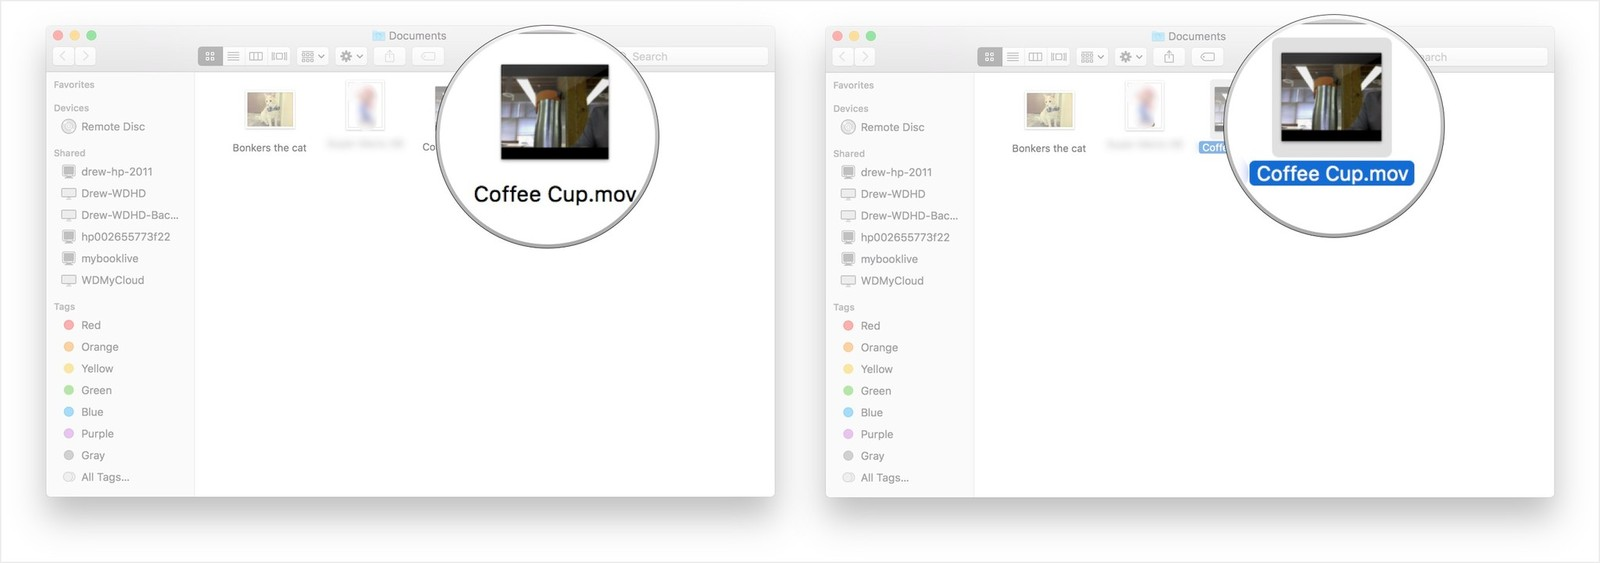 how to find videos on iphoto mac